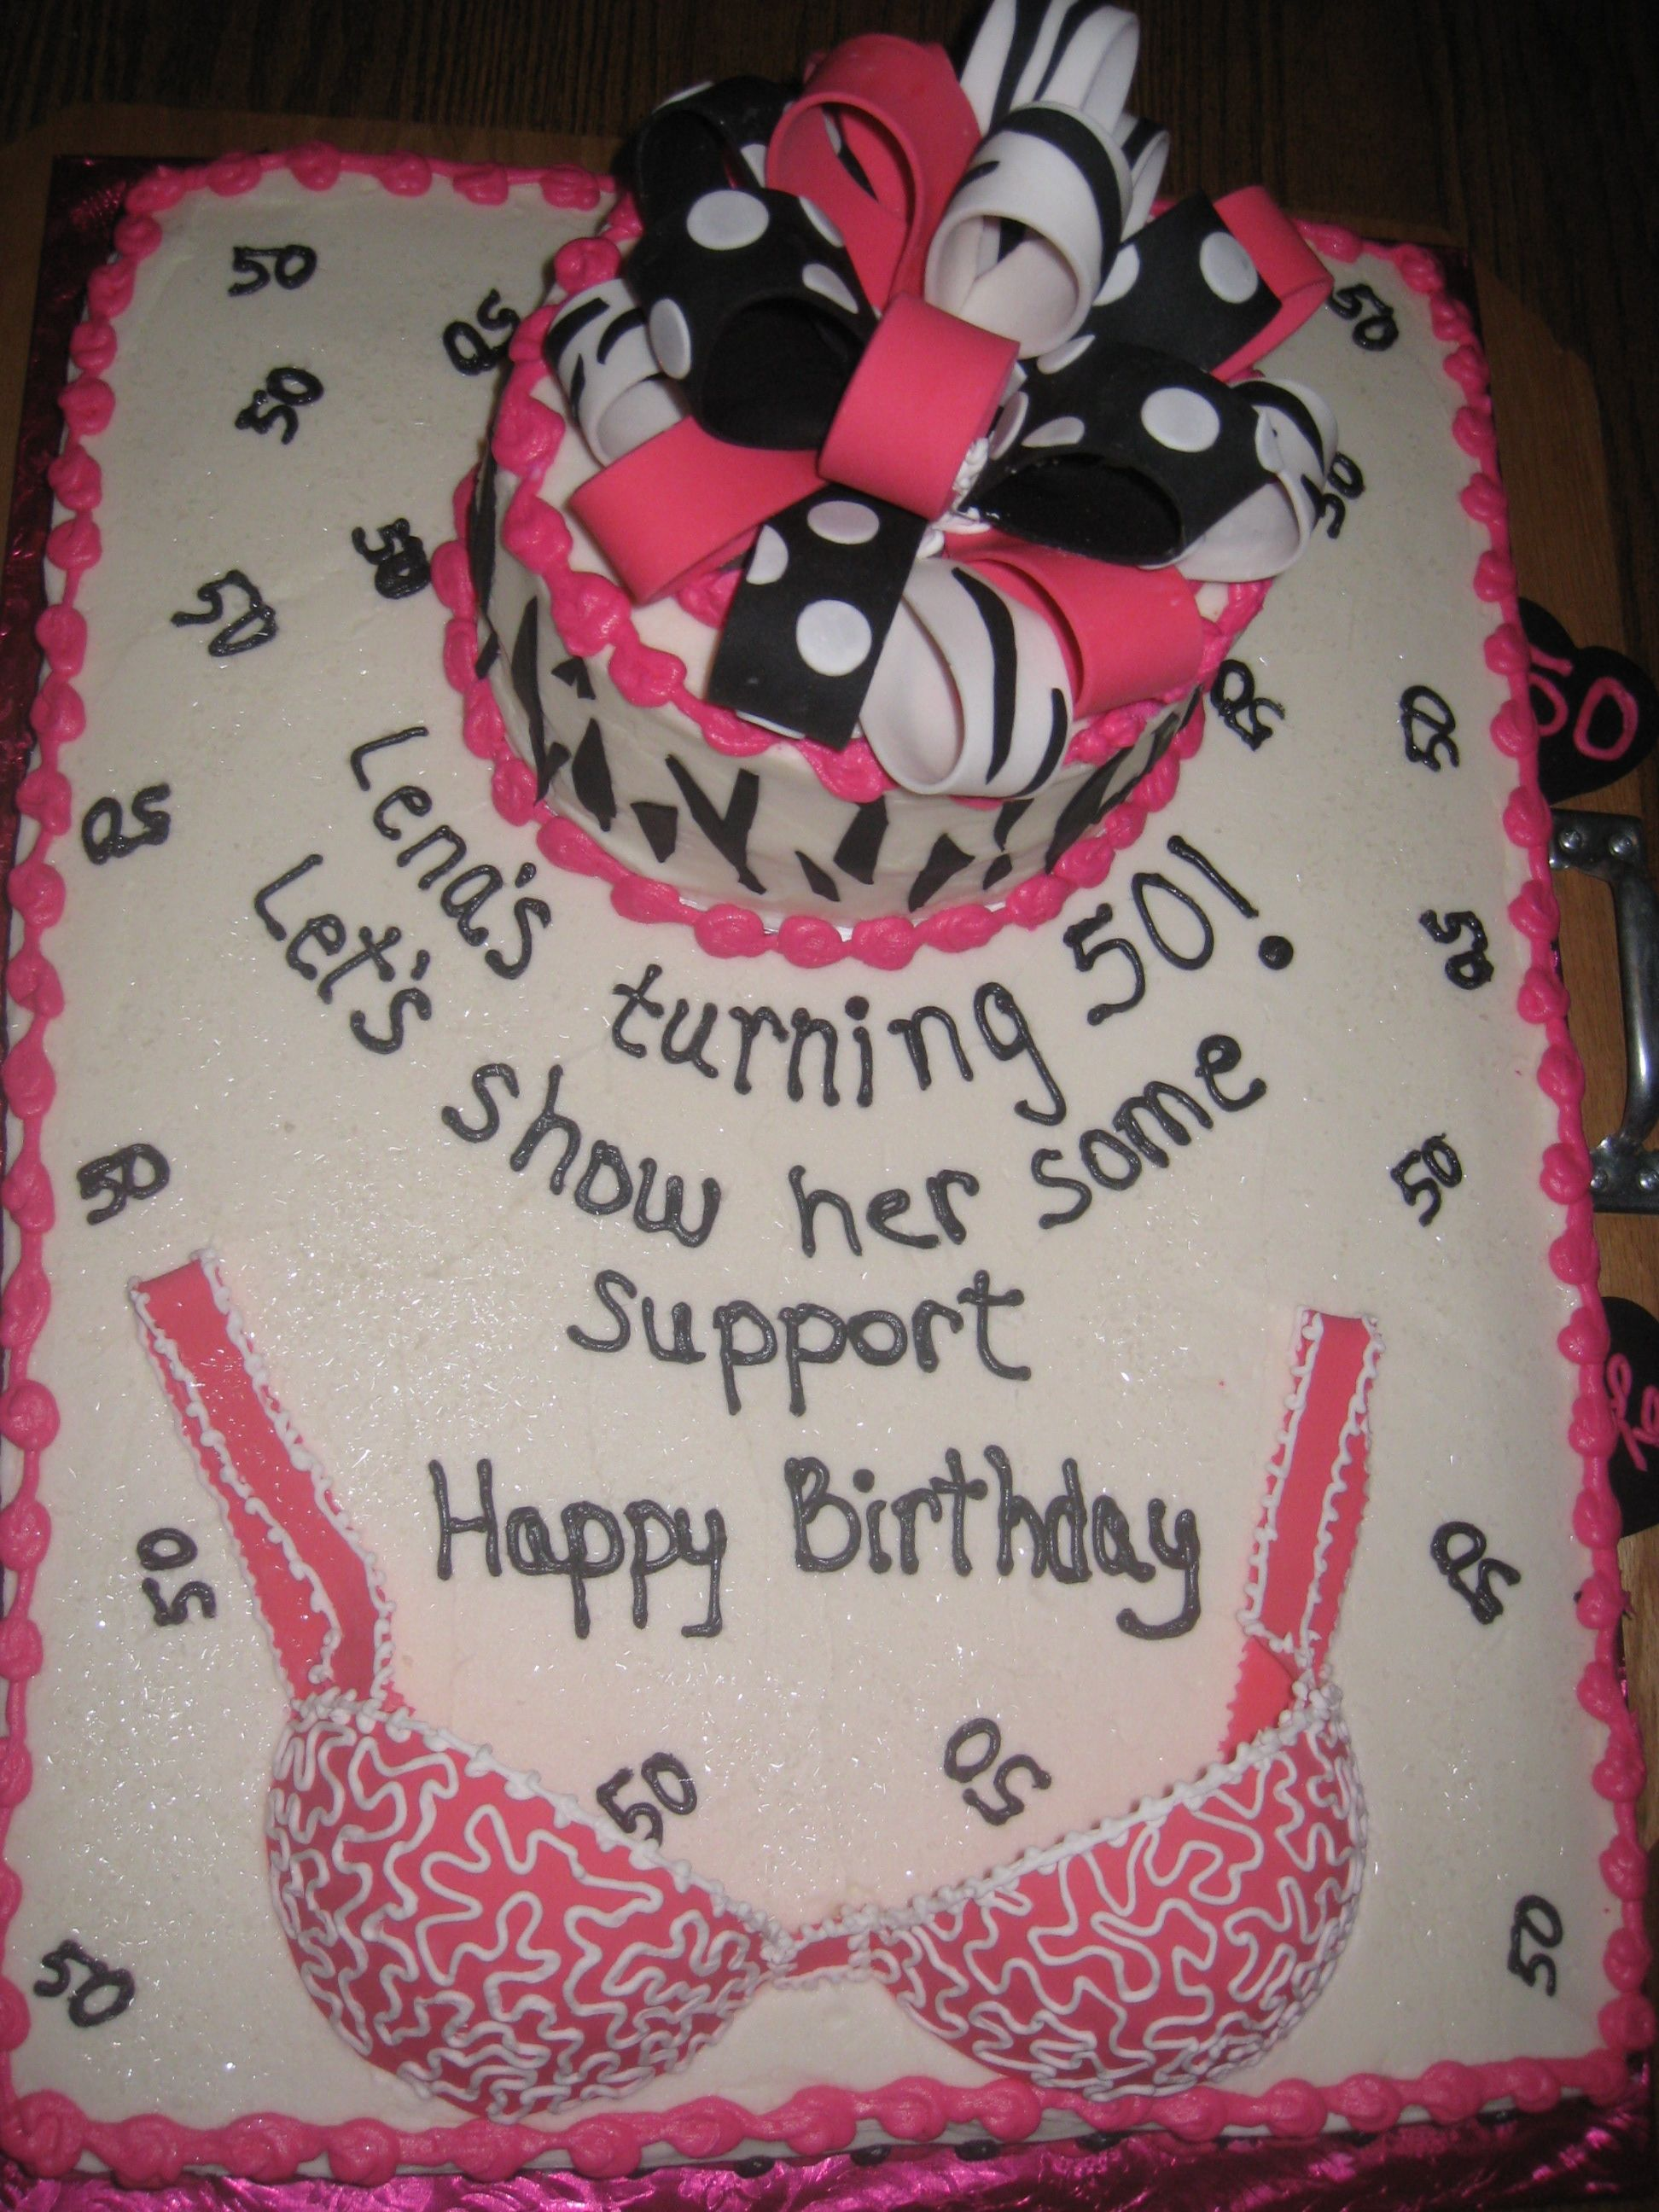 50th Birthday Cake With Images 50th Birthday Cake Funny